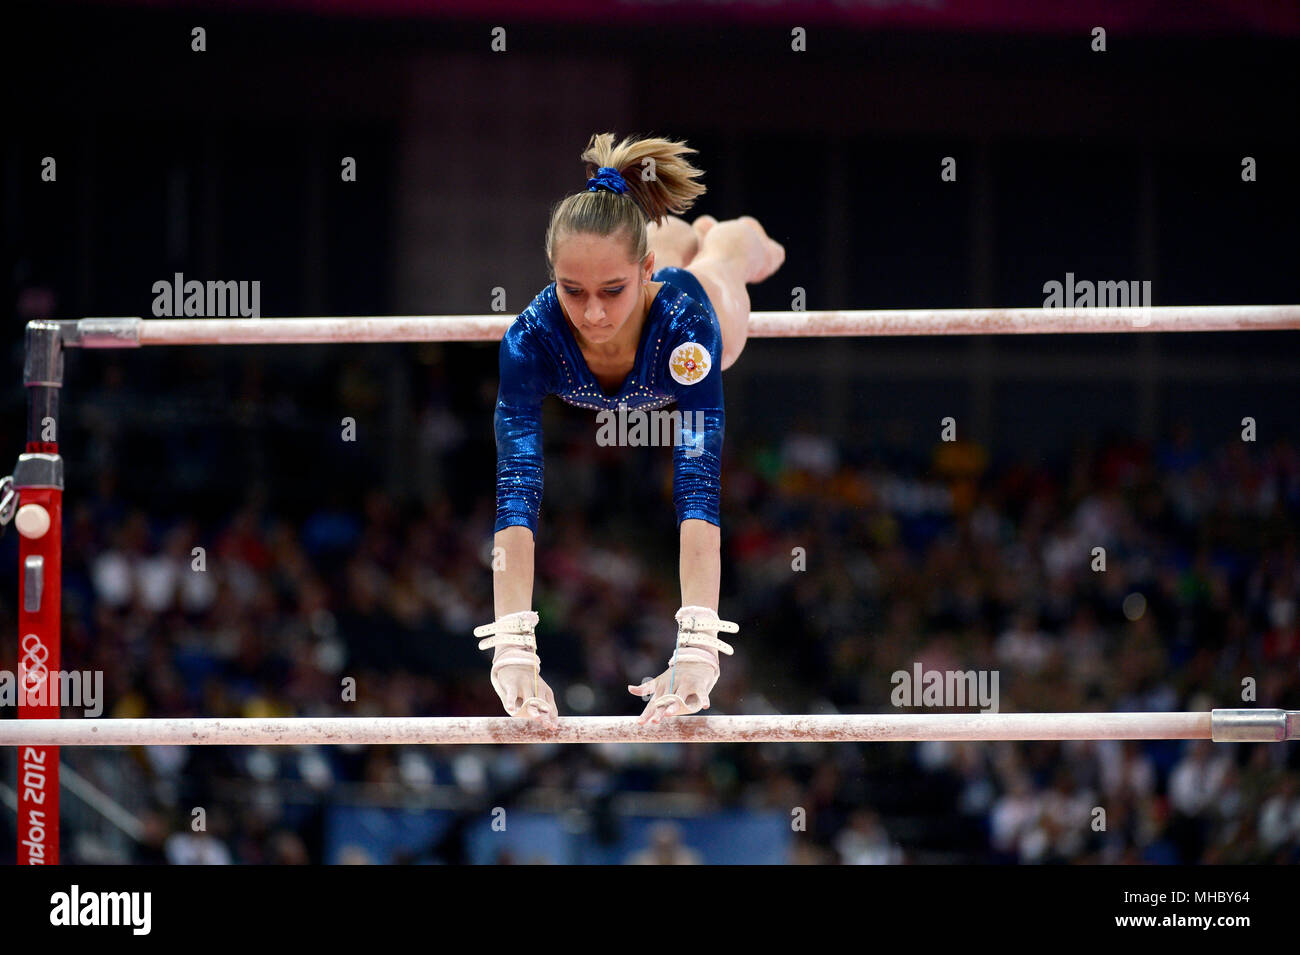 Victoria Komova of Russia performs on the Uneven Parallel Bars during the Women's All Around Gymnastics competition,  in which she won the silver medal. - Stock Image